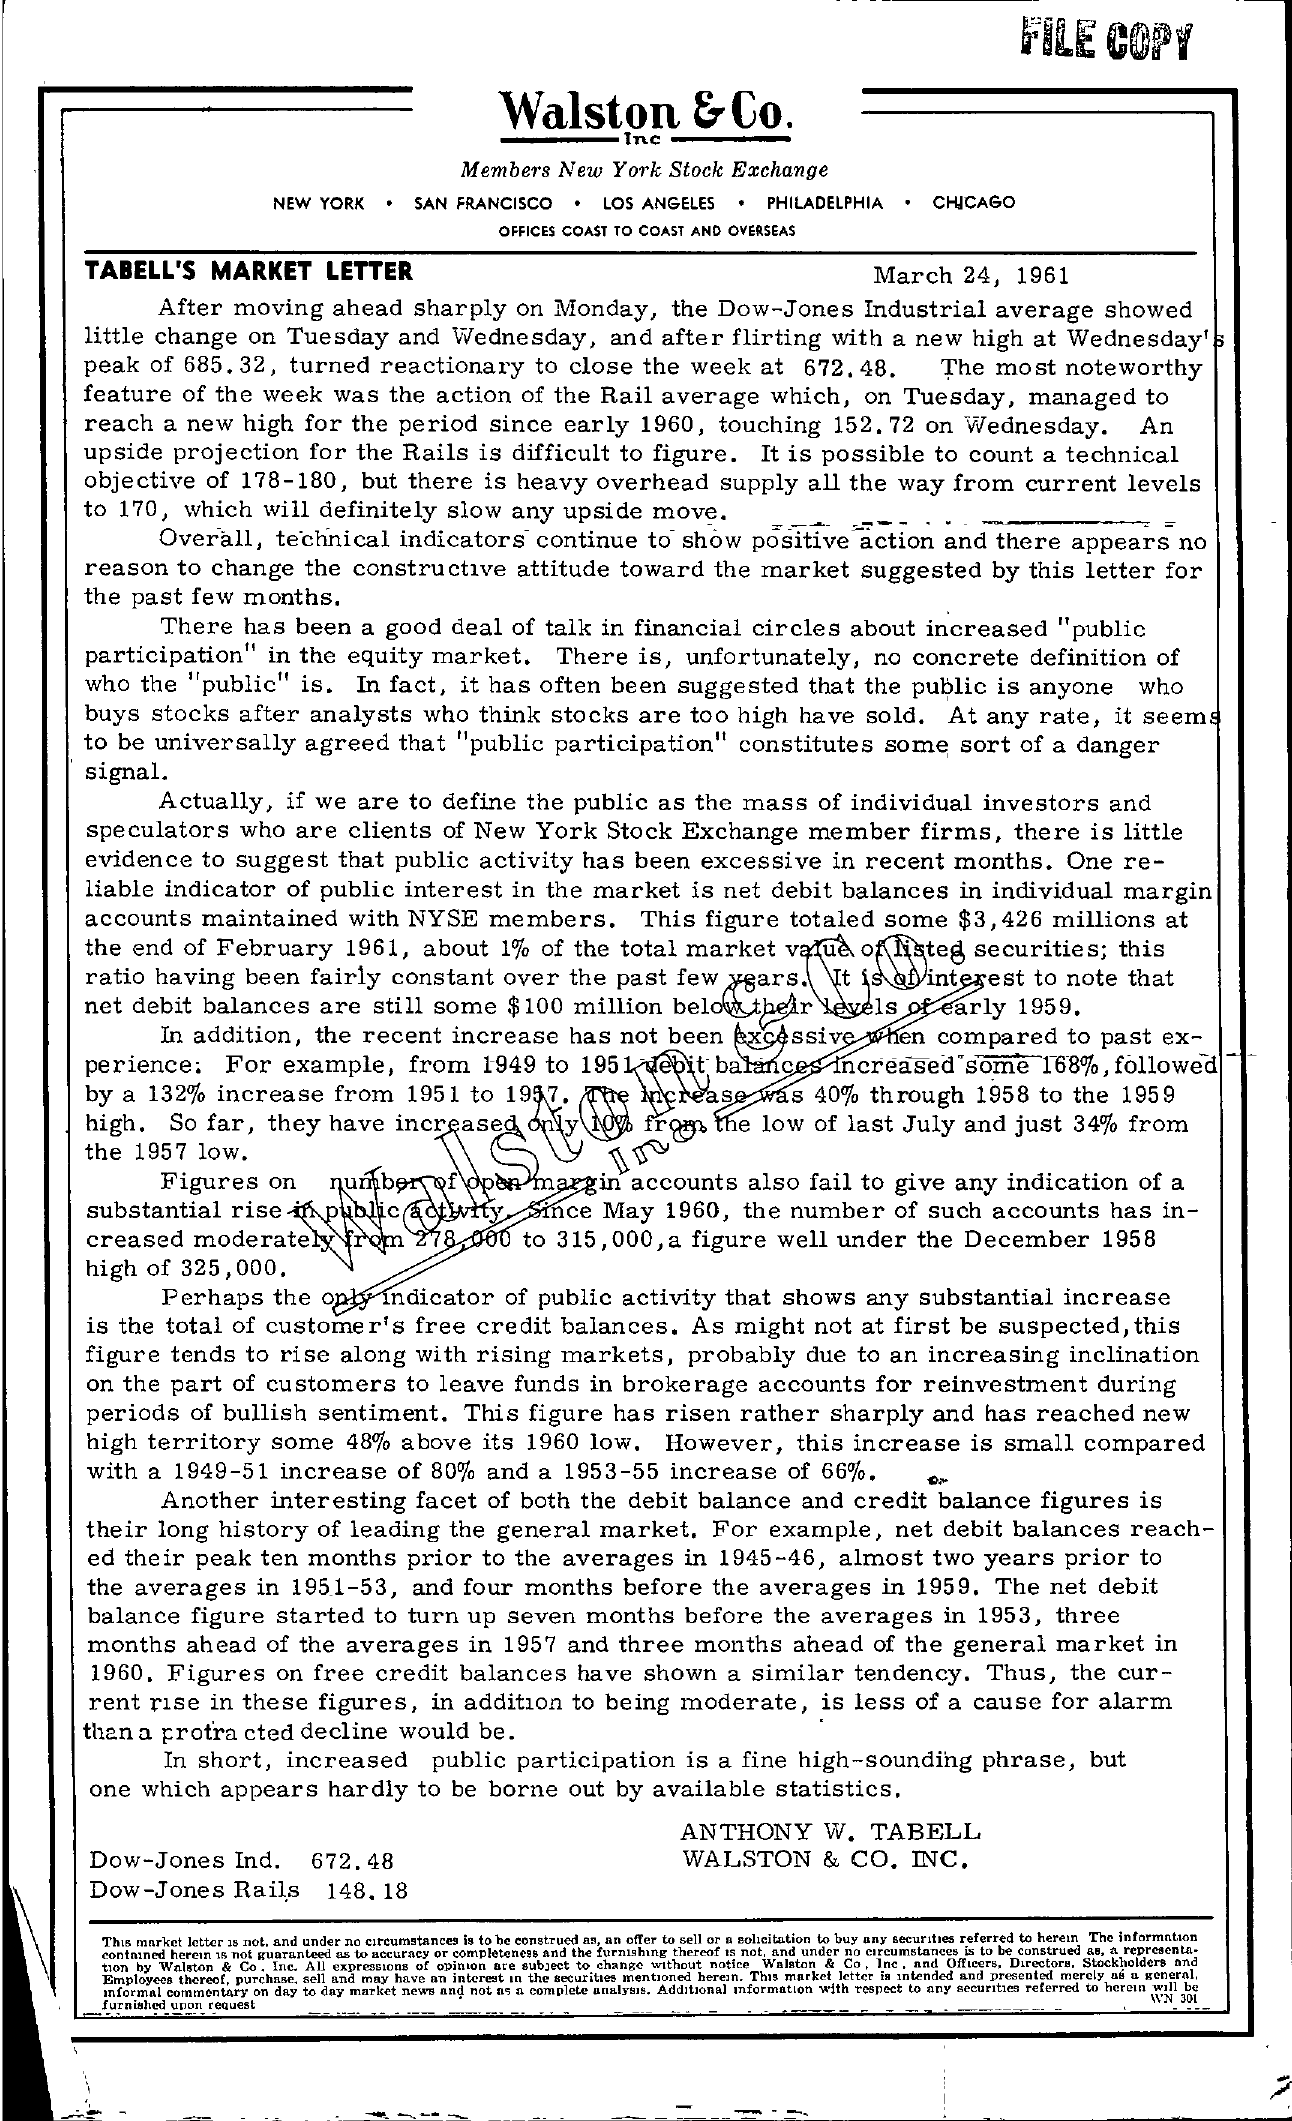 Tabell's Market Letter - March 24, 1961